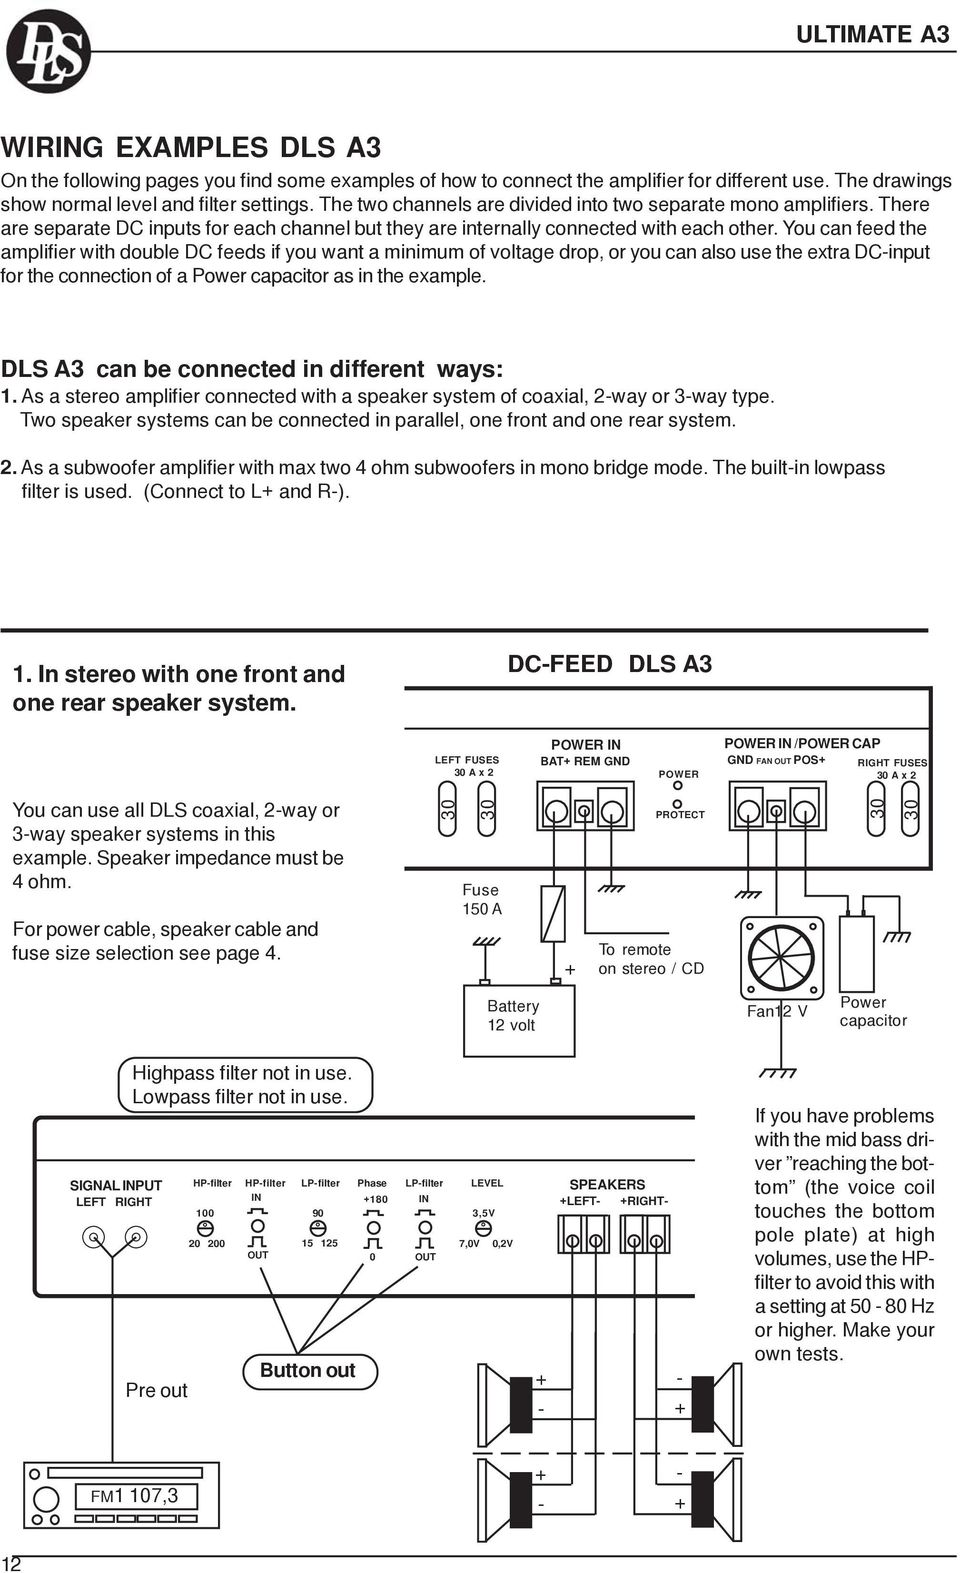 How To Install And Operate The Dls Ultimate A Series Amplifiers A1 Coaxial 2 Way Speaker Wiring Diagram You Can Feed Amplifier With Double Dc Feeds If Want Minimum Of Voltage